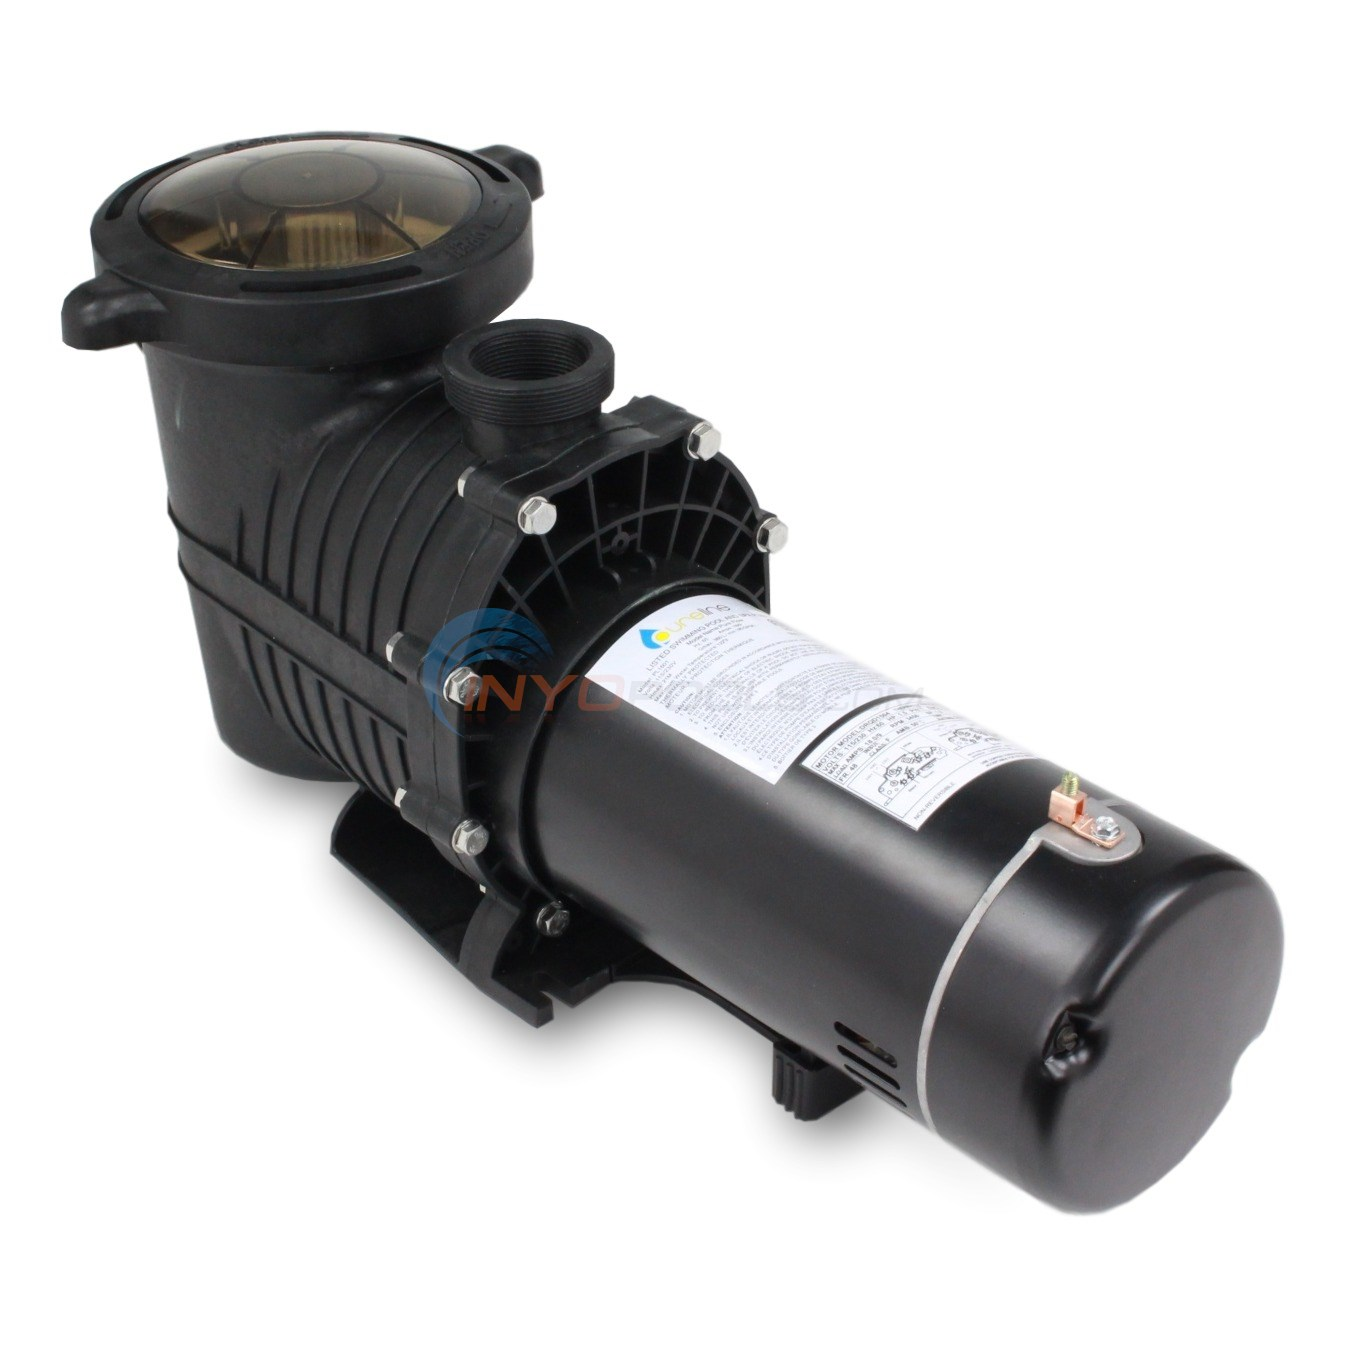 pureline pl1600 02?format=jpg&scale=both&anchor=middlecenter&autorotate=true&mode=pad&width=650&height=650 pureline 1 5 h p in ground pool pump 72744 inyopools com  at fashall.co